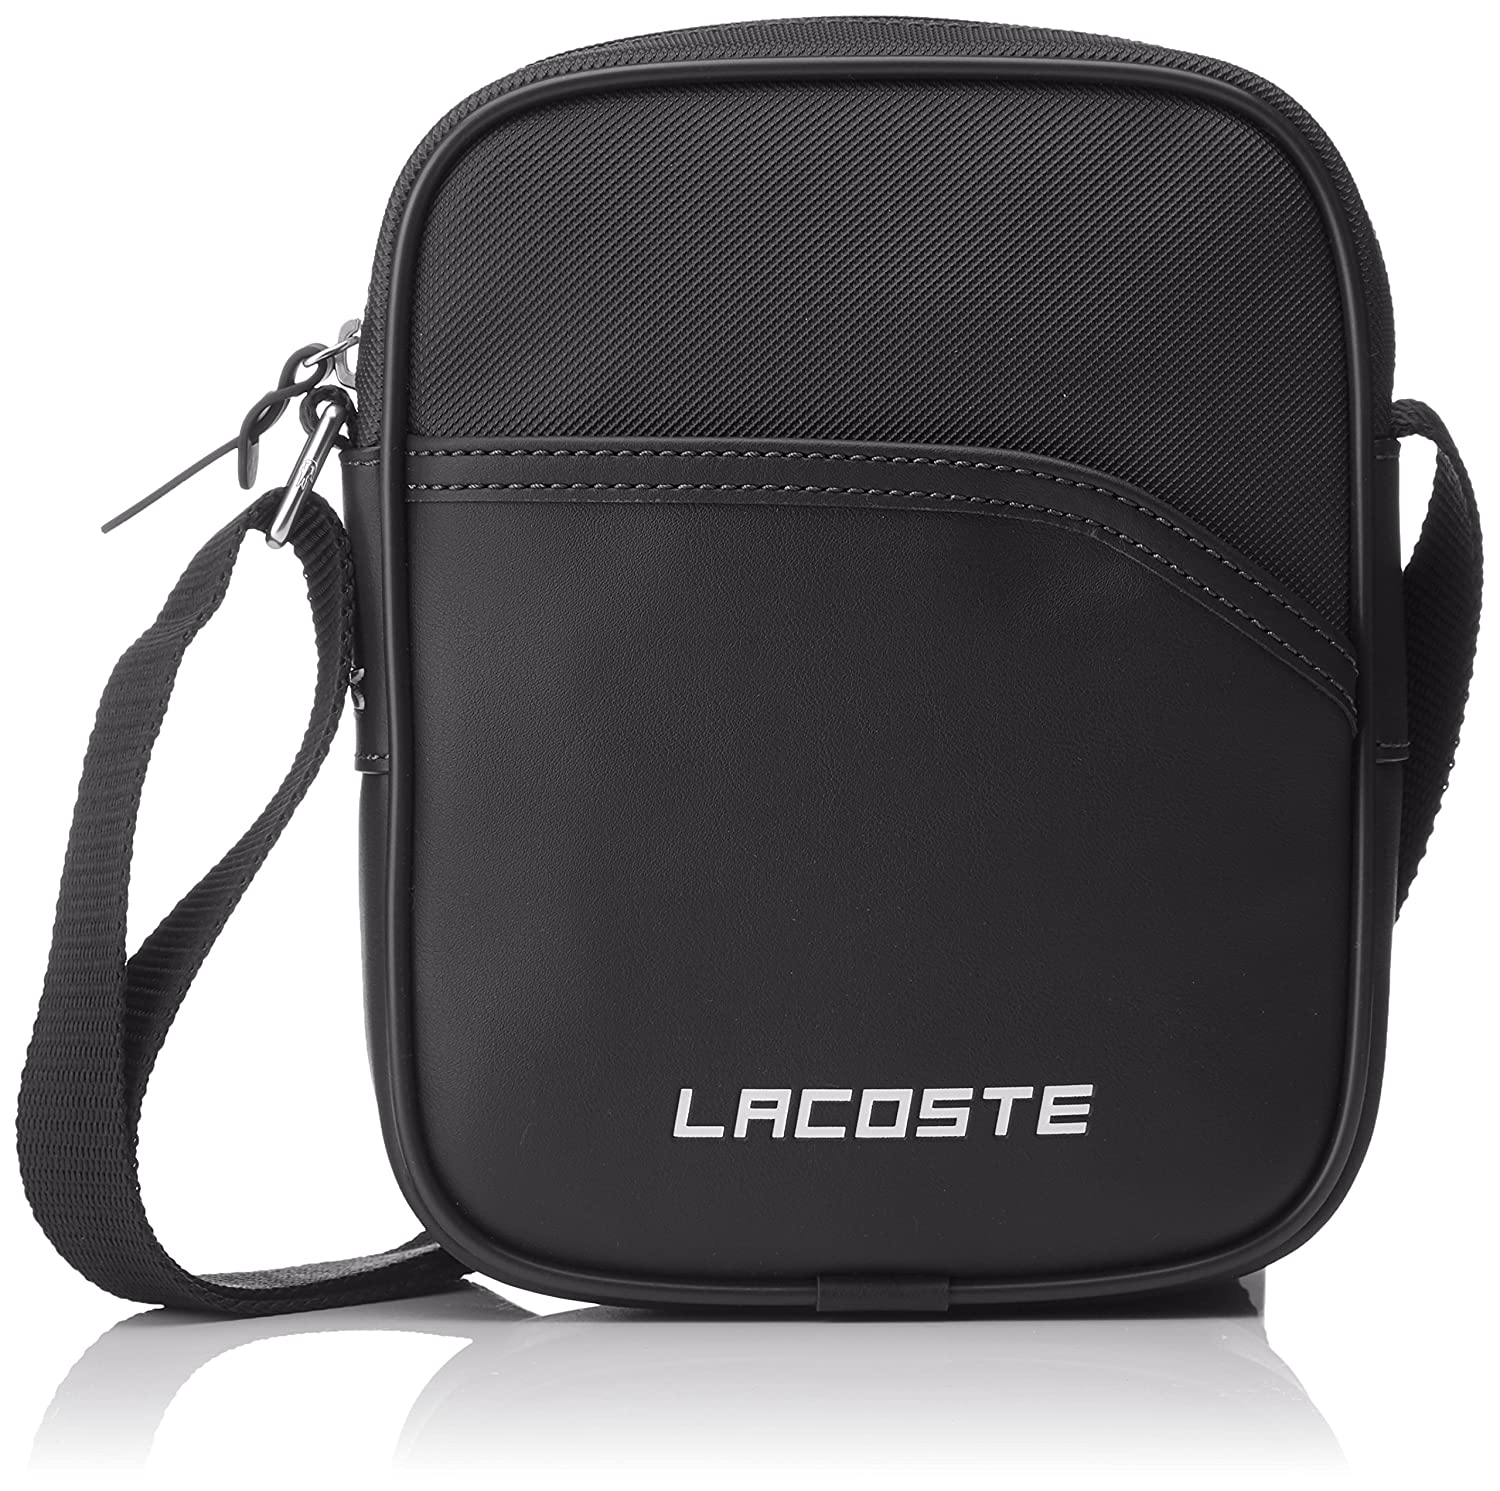 d0add5b6 Lacoste Mens Vertical Camera Bag - Black